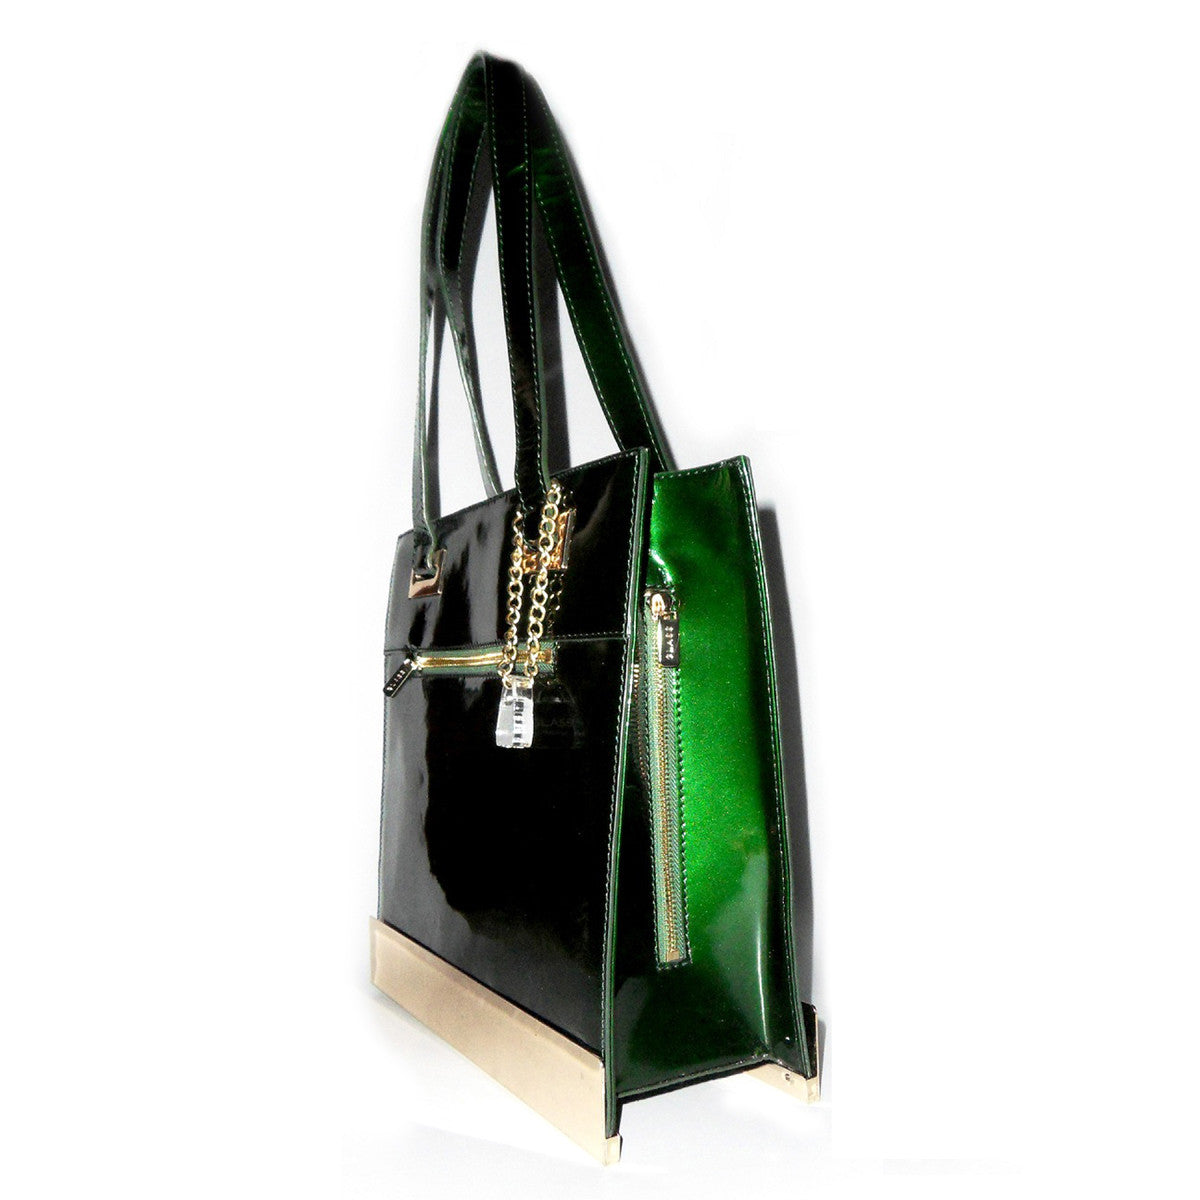 Glass Handbag Jewel Leather Shoulder Bag Custom Hardware in Emerald Green